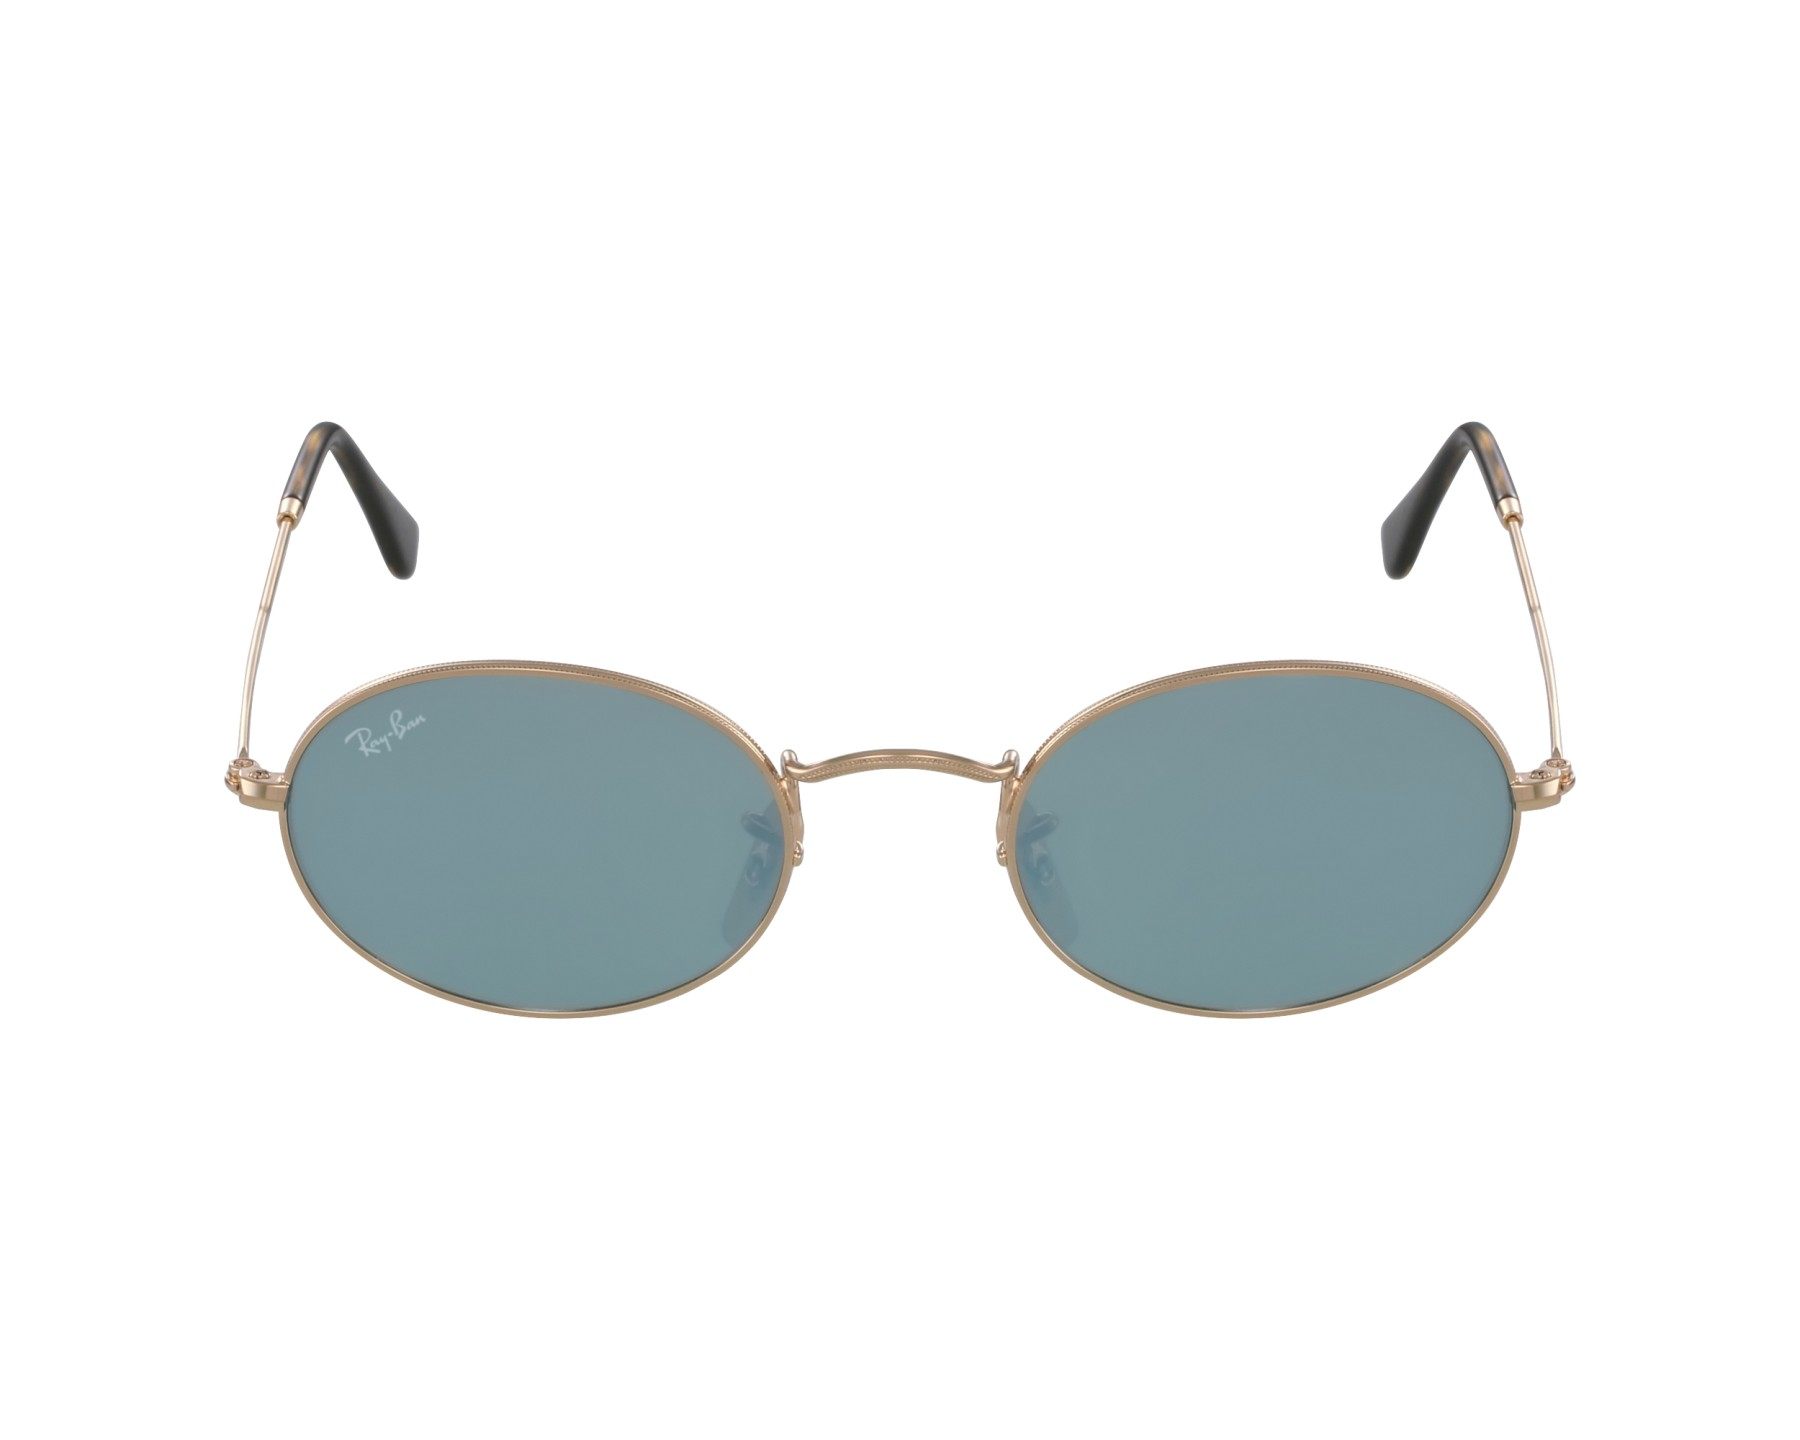 603f98a75b Sunglasses Ray-Ban RB-3547-N 001 30 - Gold profile view